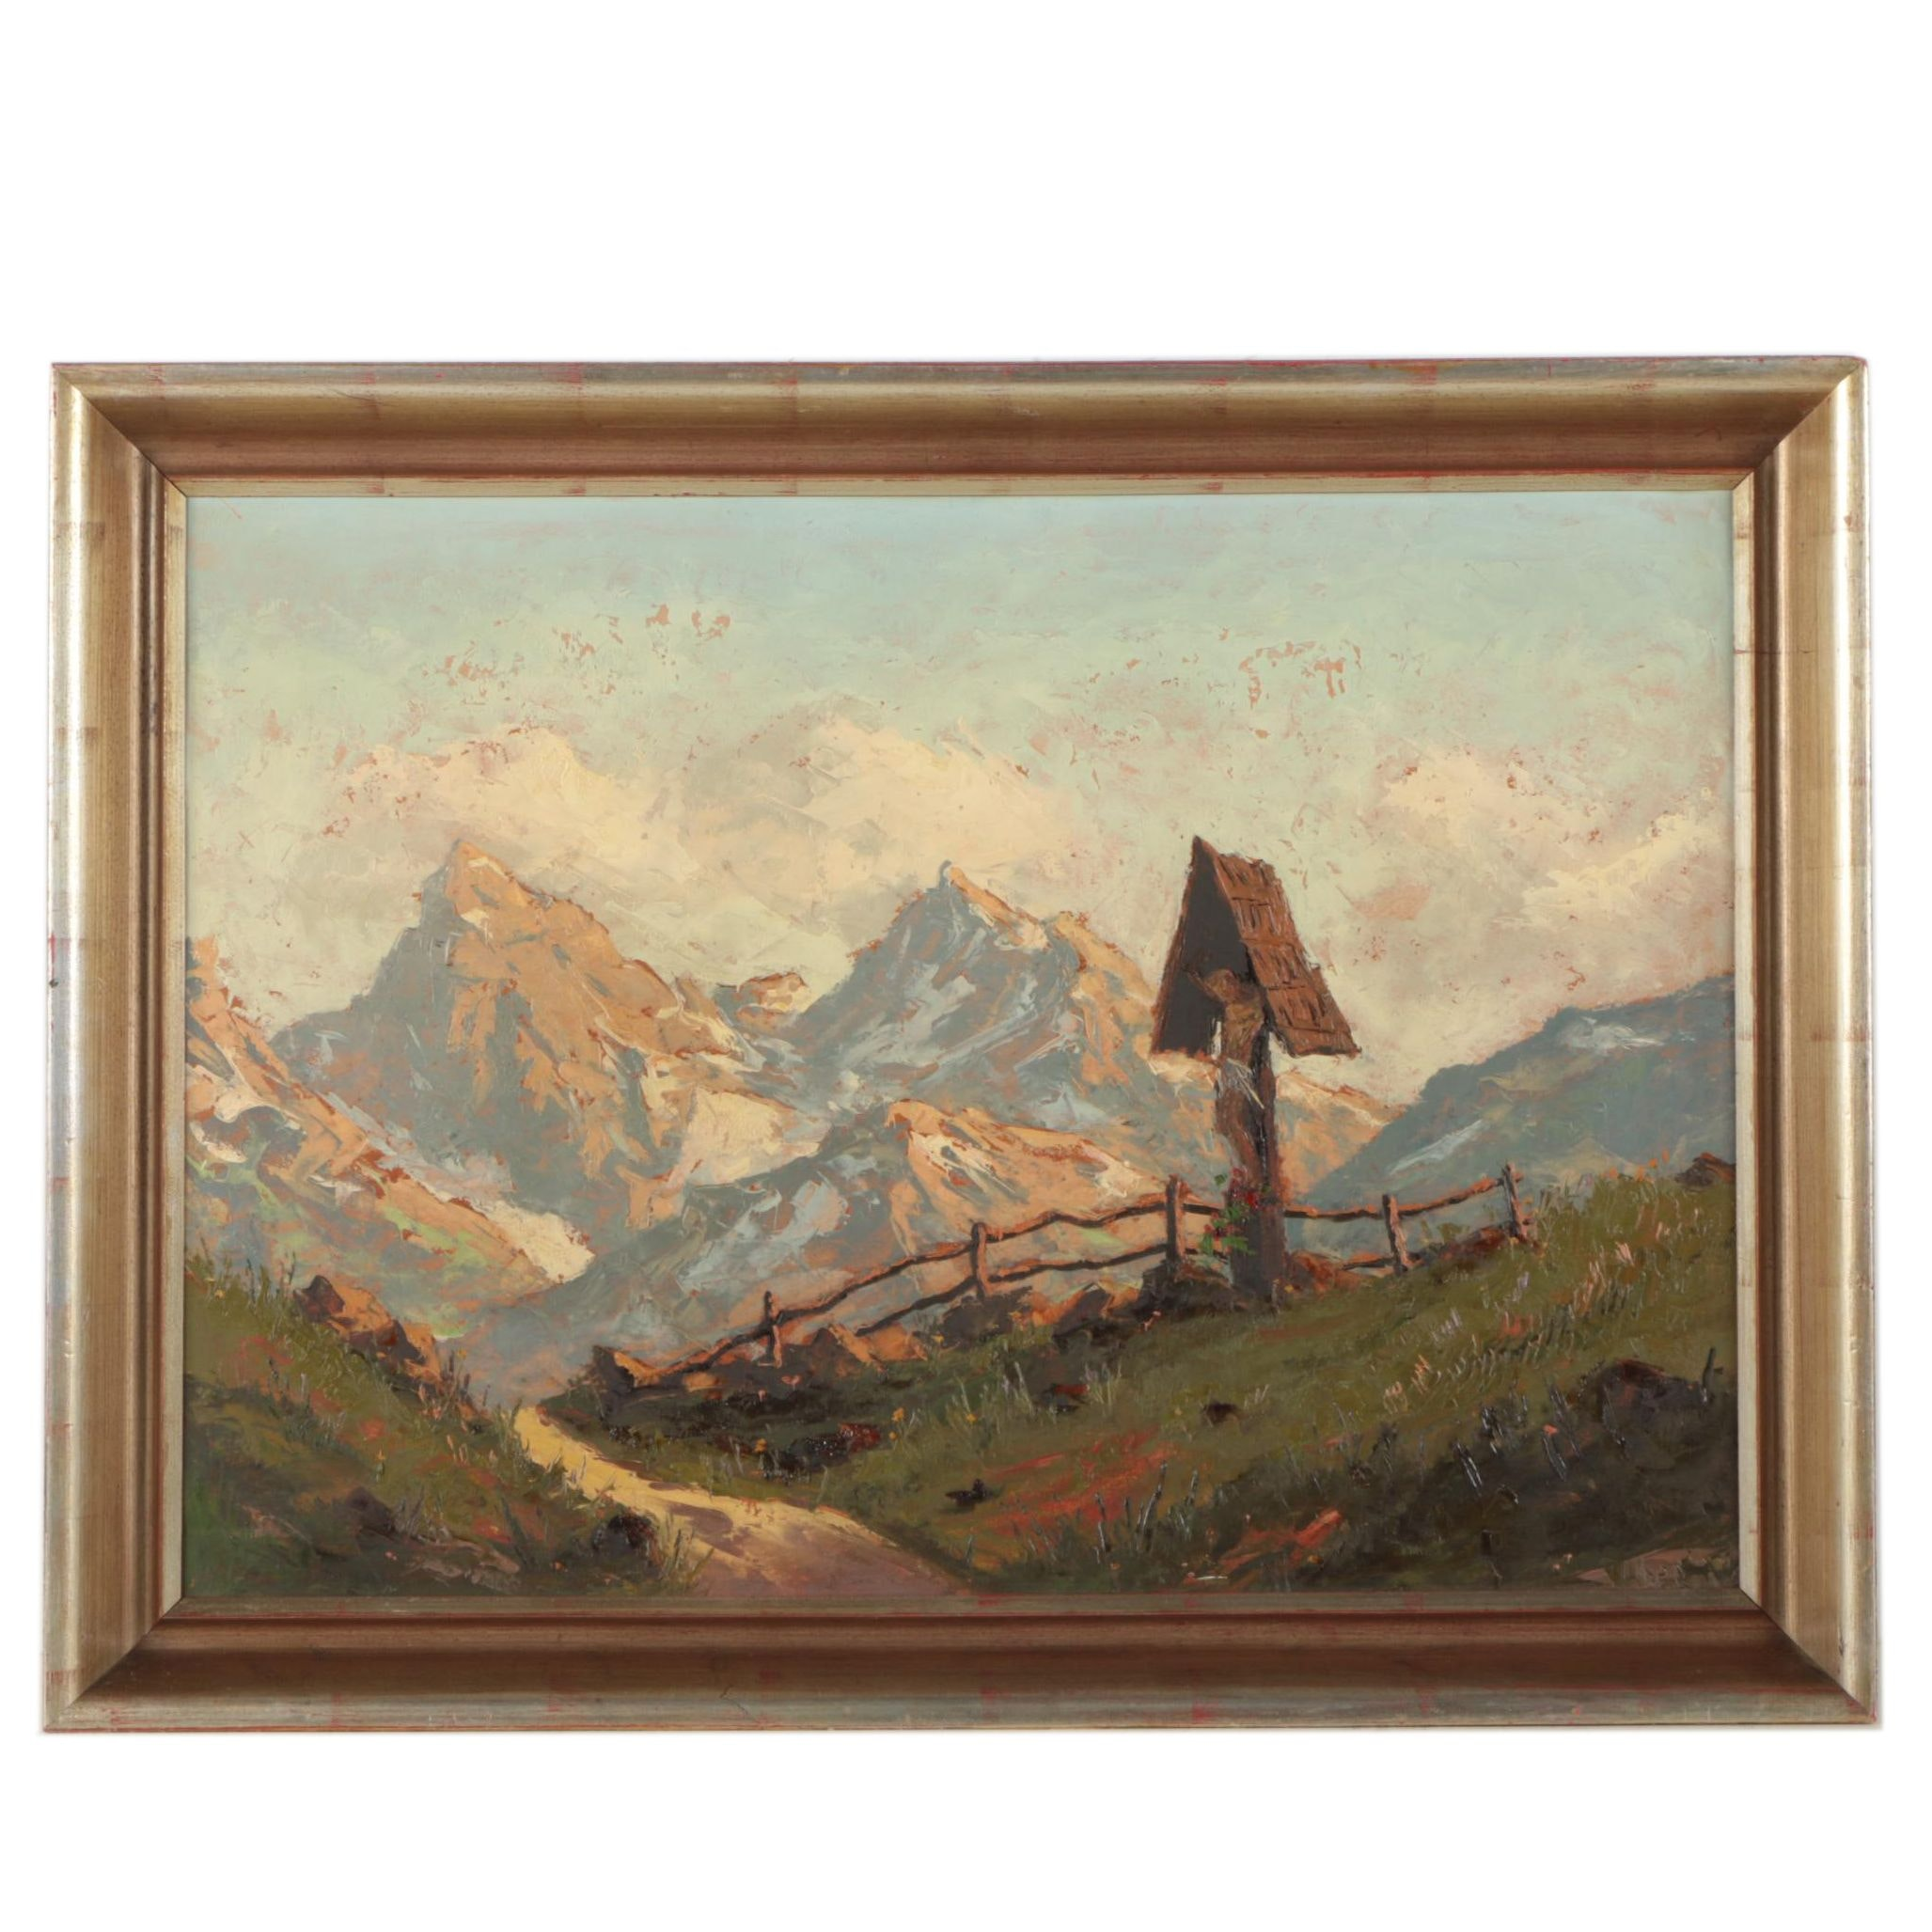 Oil Painting of Mountain Landscape